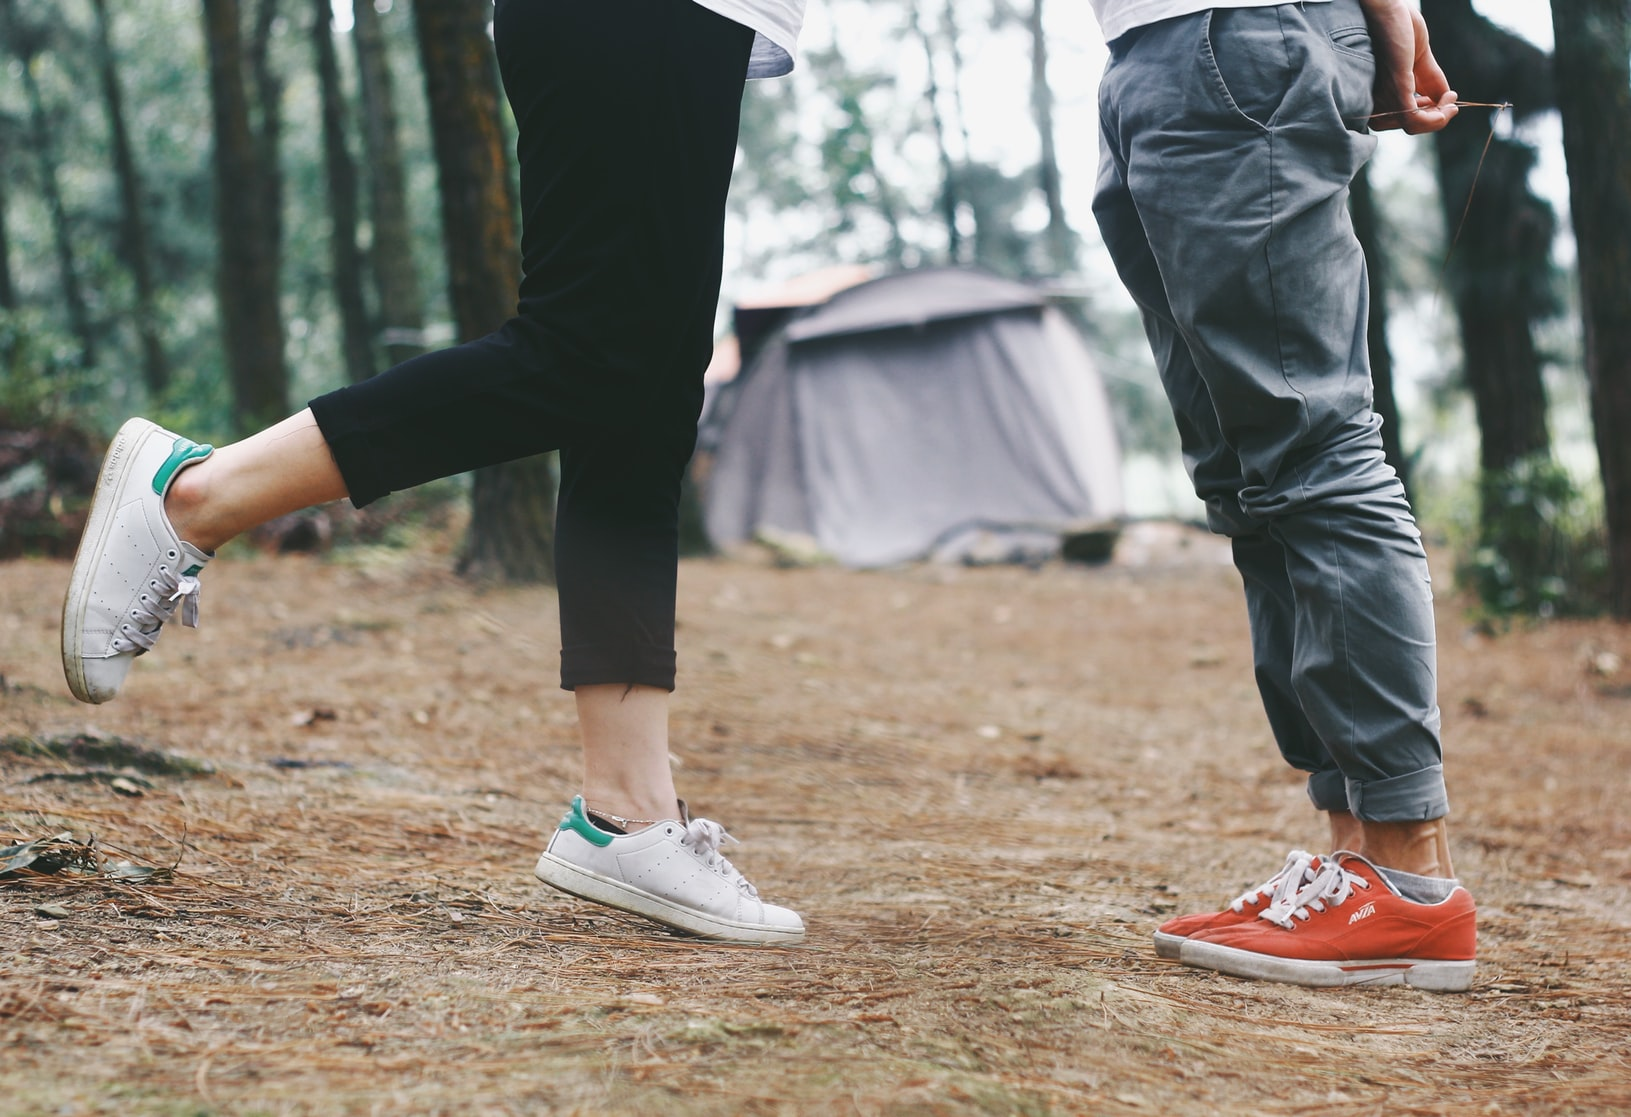 Woman standing in front of man near tent in woods